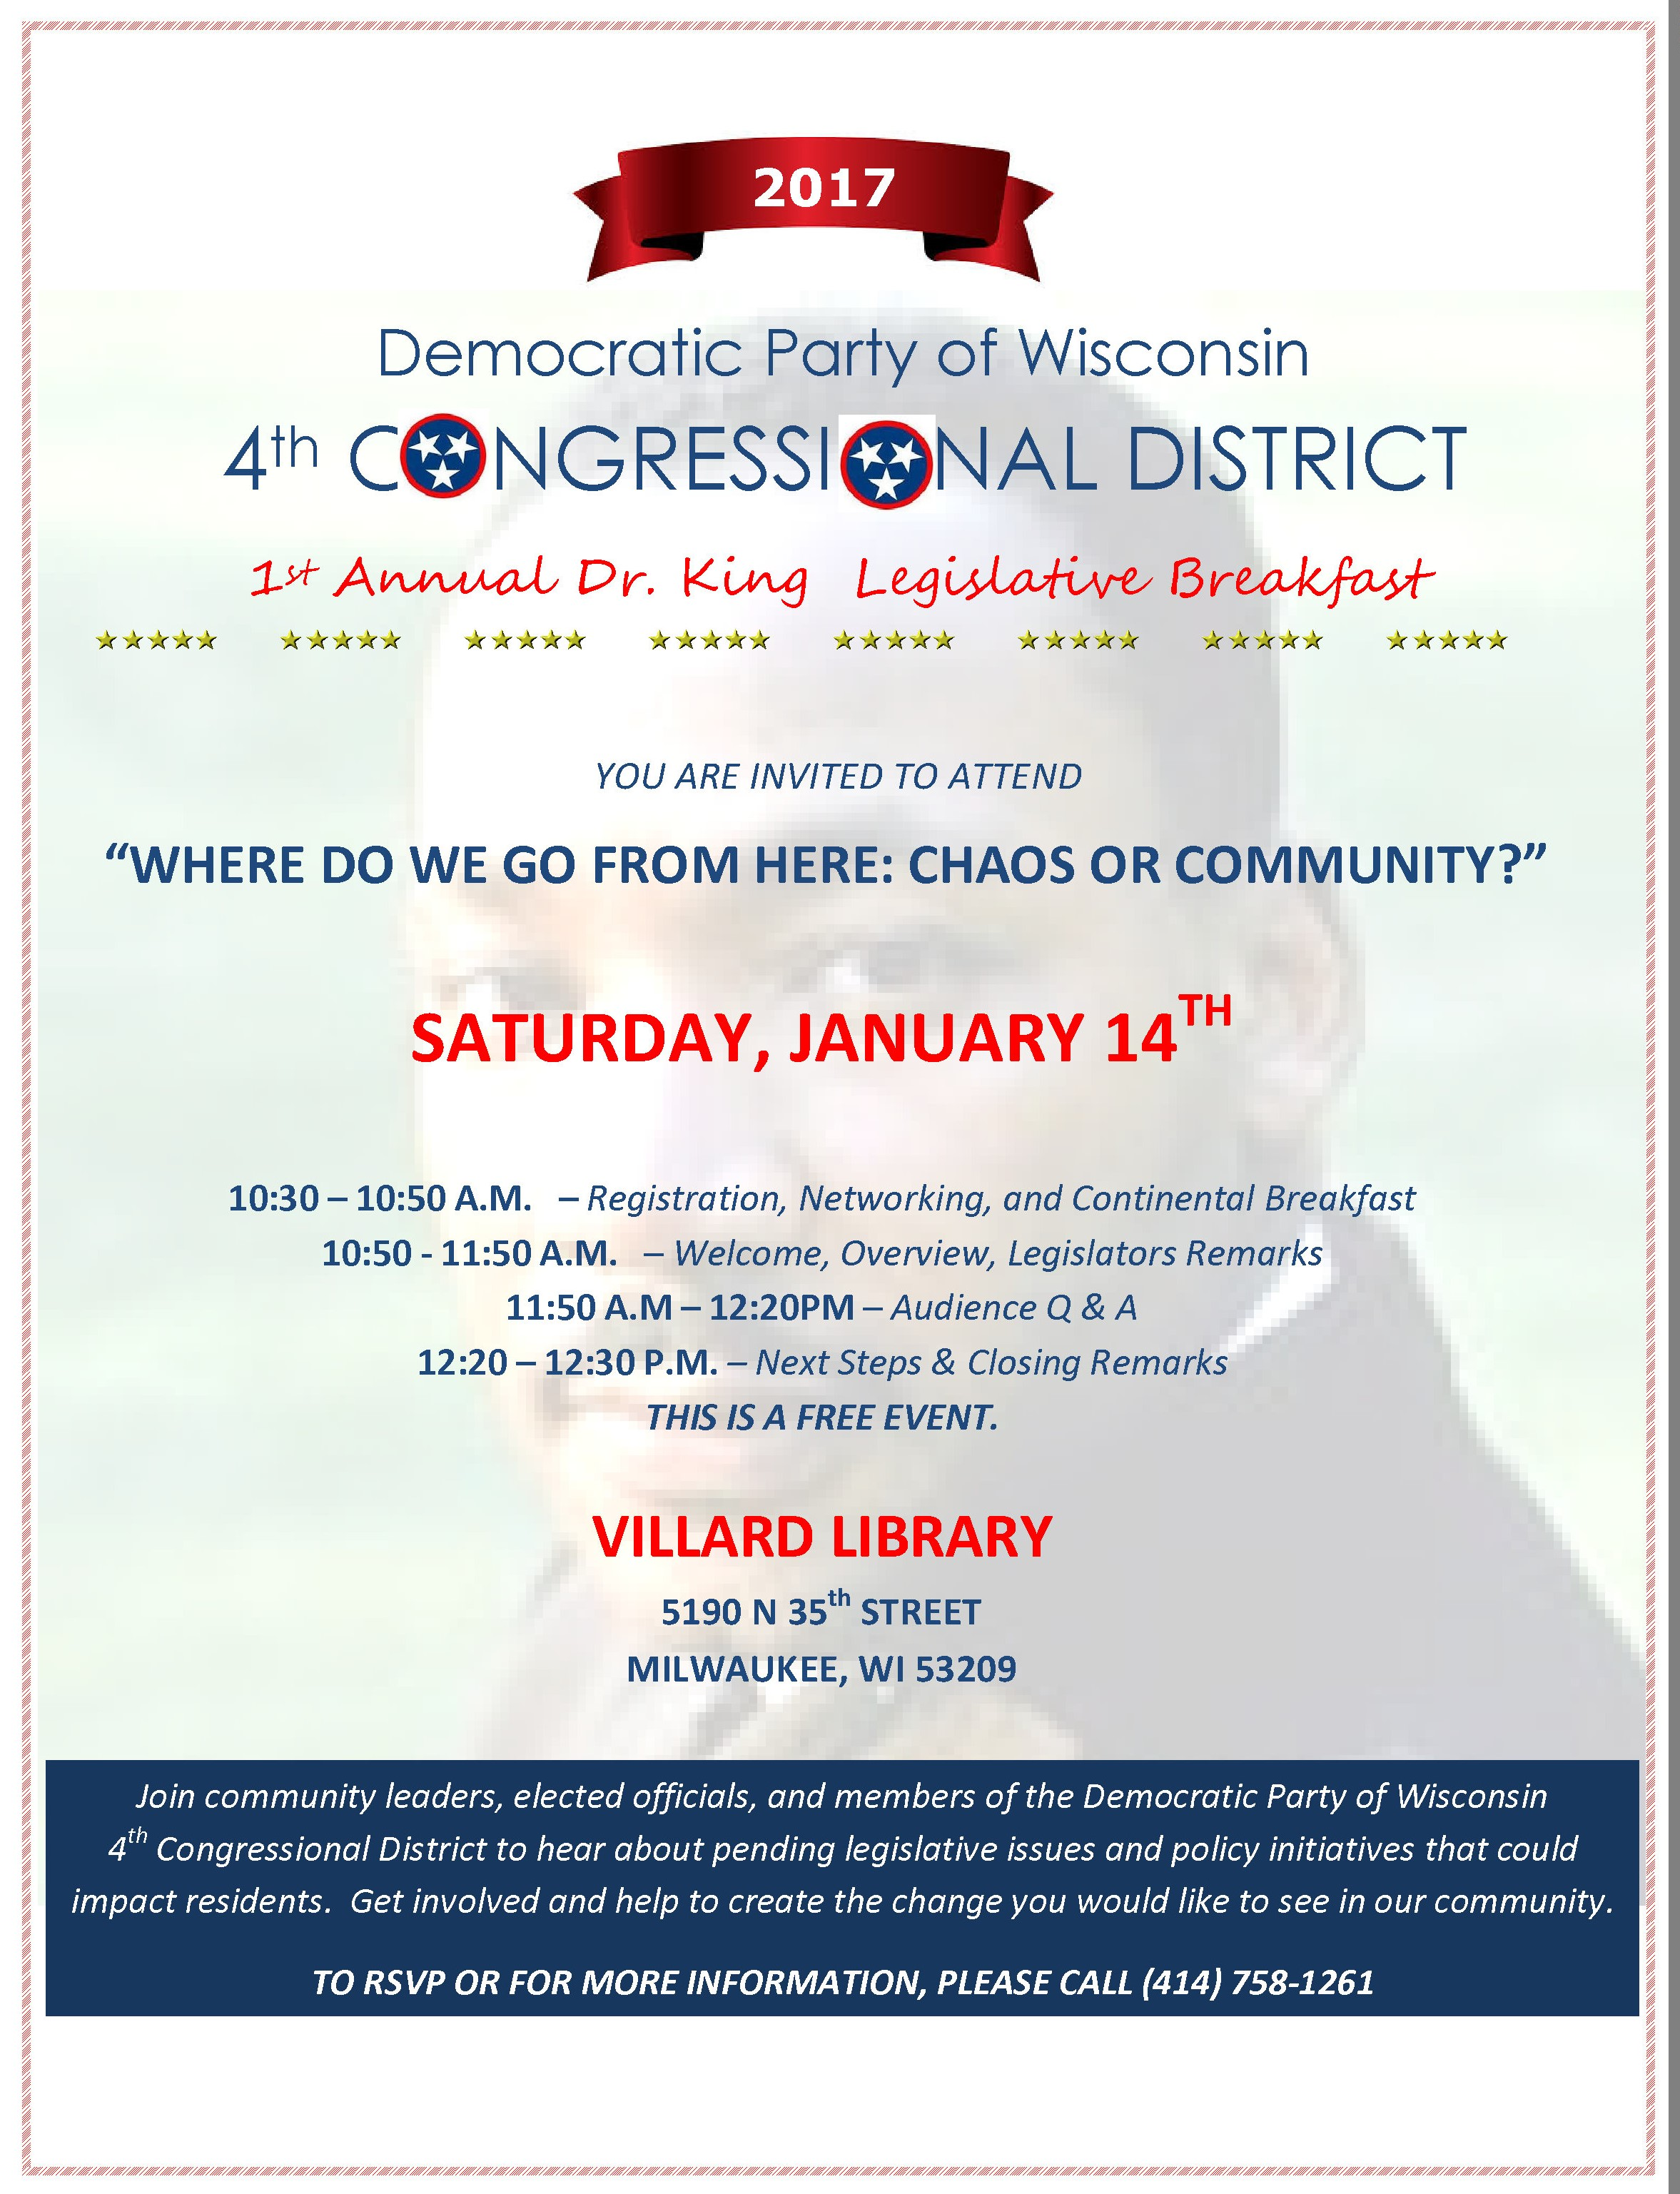 Flyer_Invite_to_4th_CD_Legislative_Breakfast.jpg